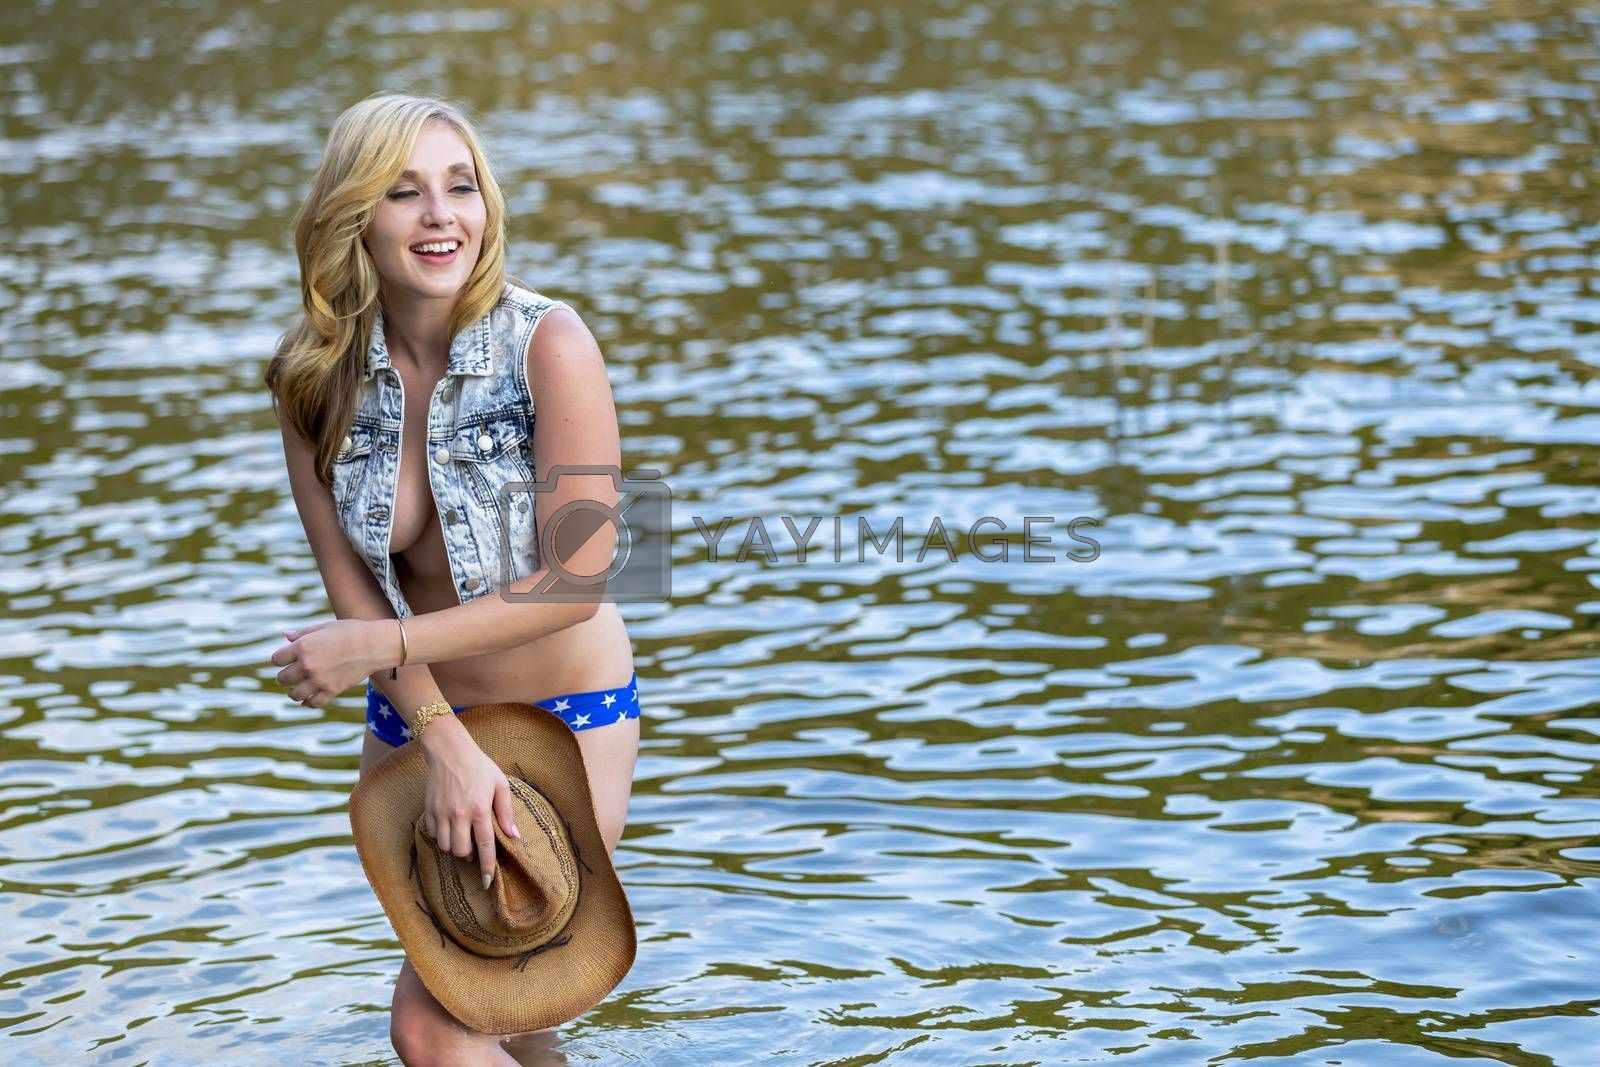 A Lovely Blonde Model Enjoys A Day At The Lake by actionsports